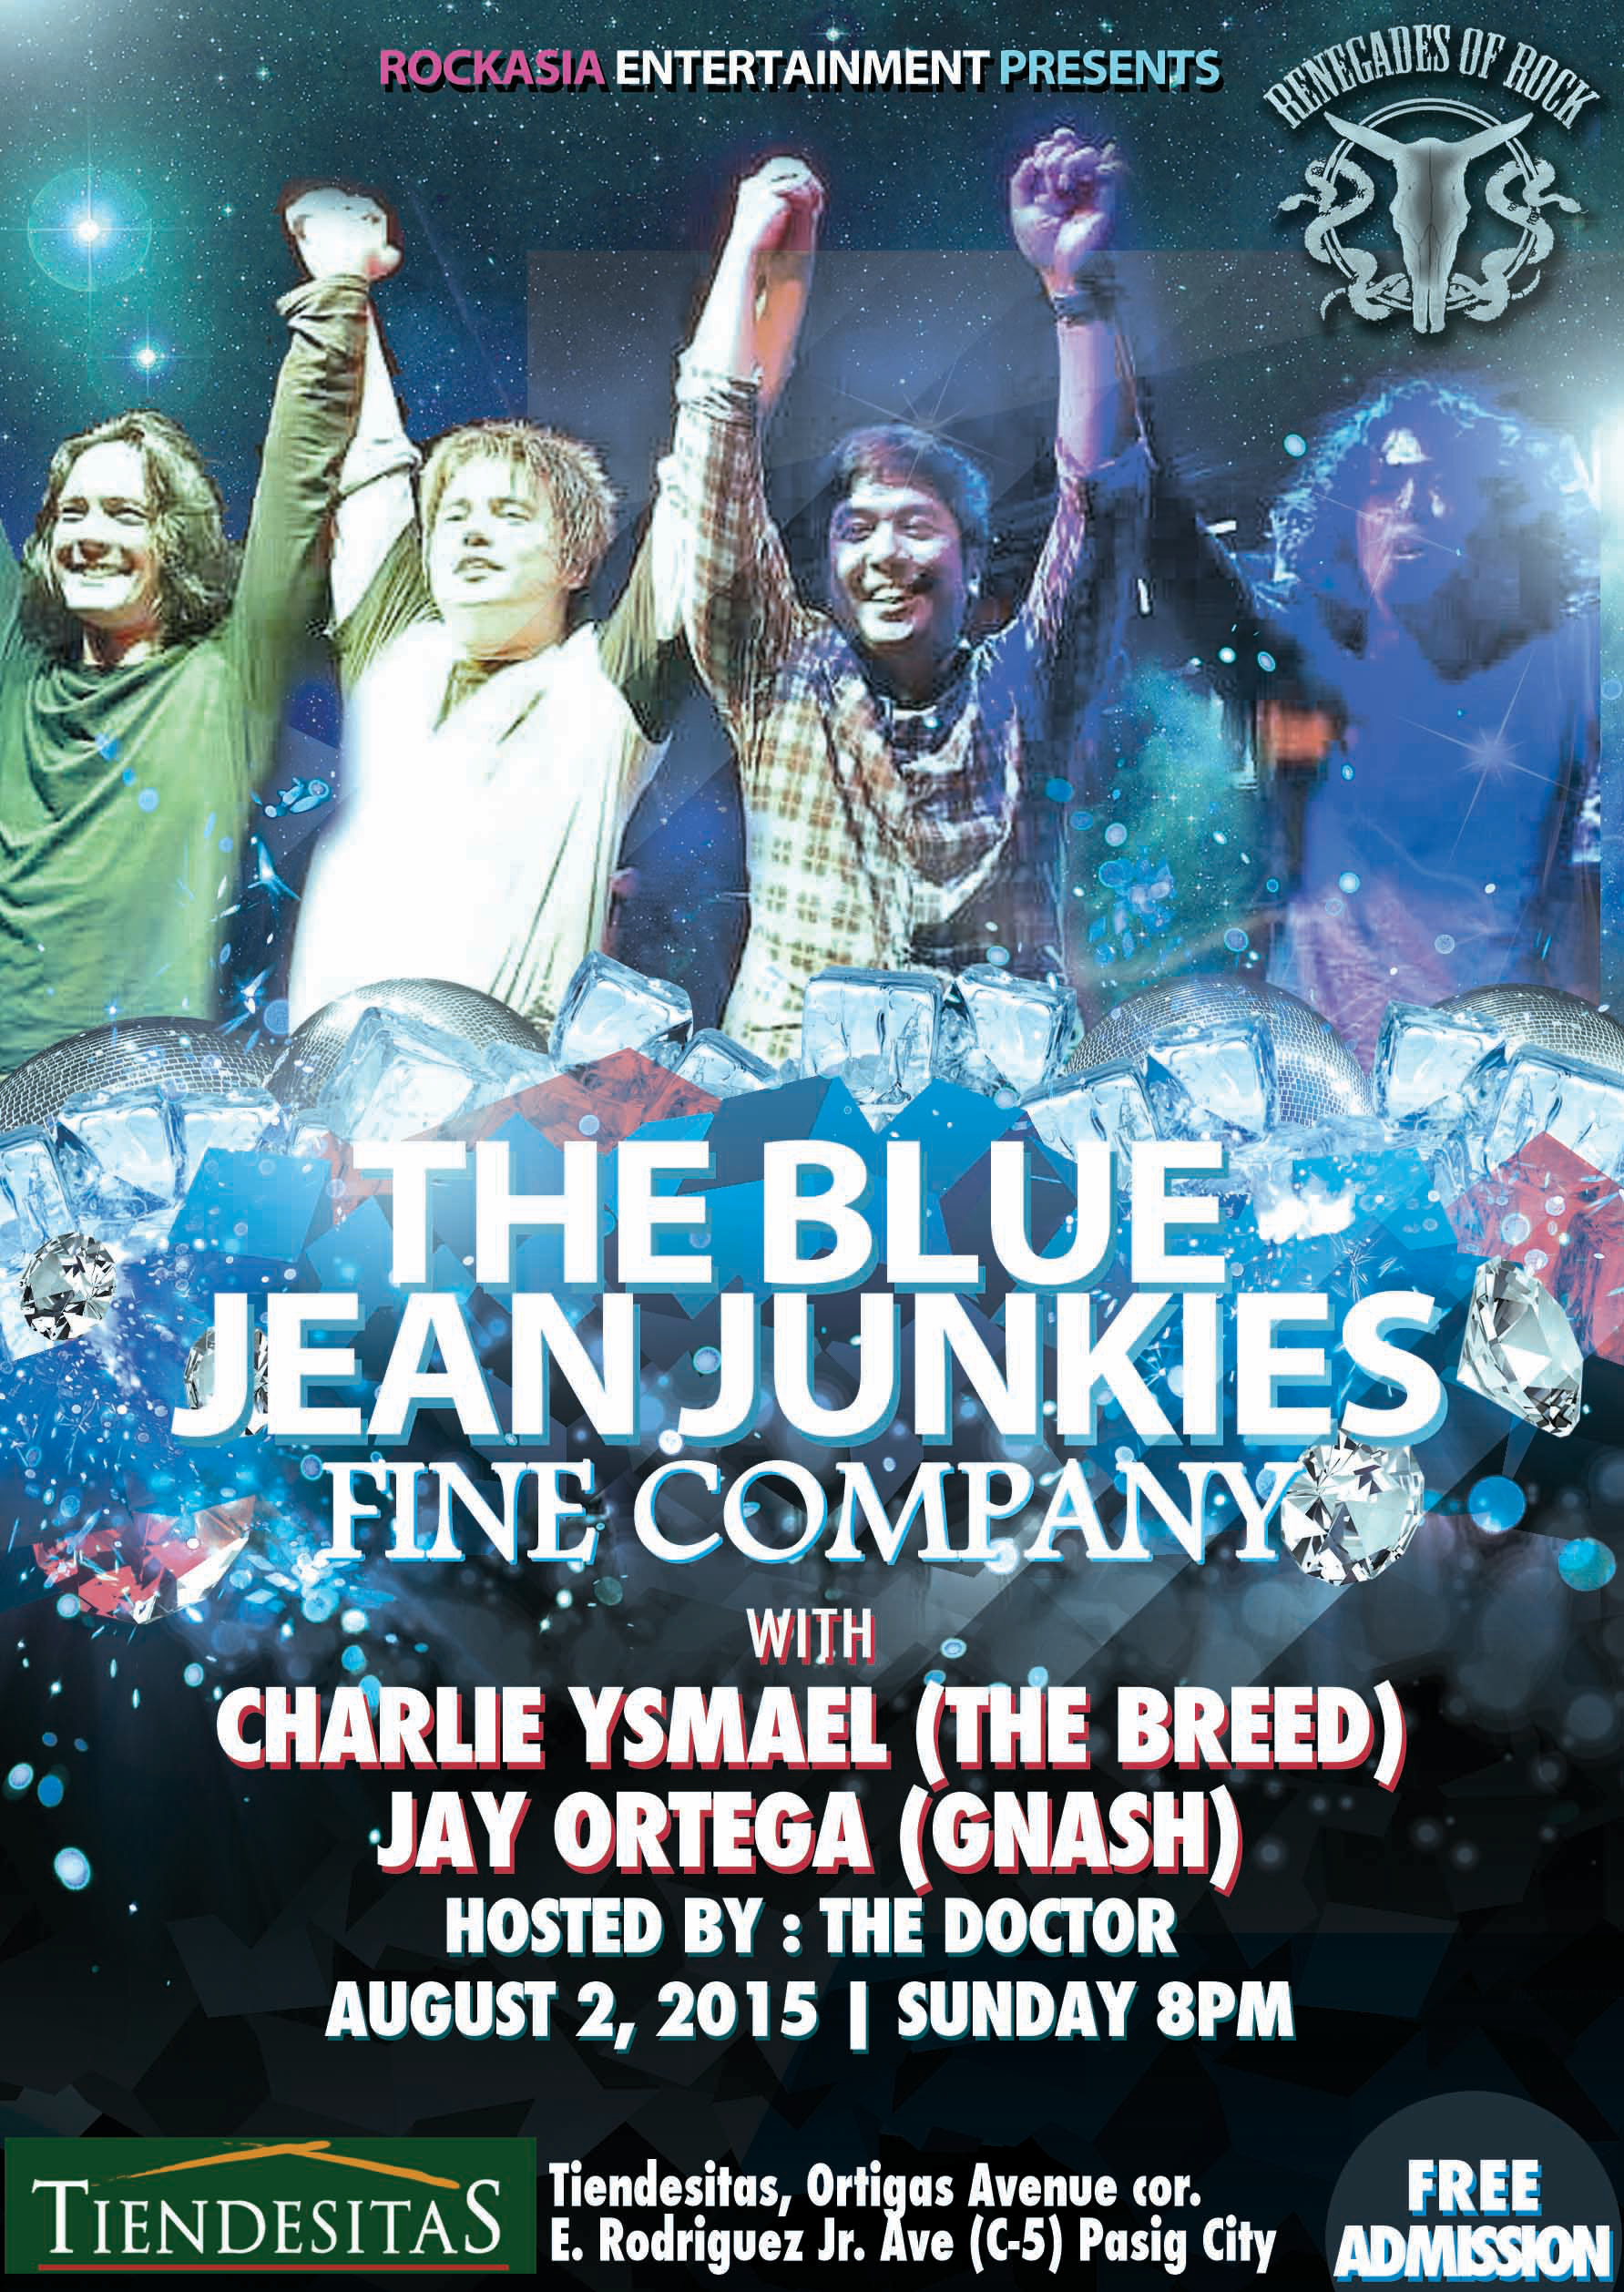 The Blue Jean Junkies